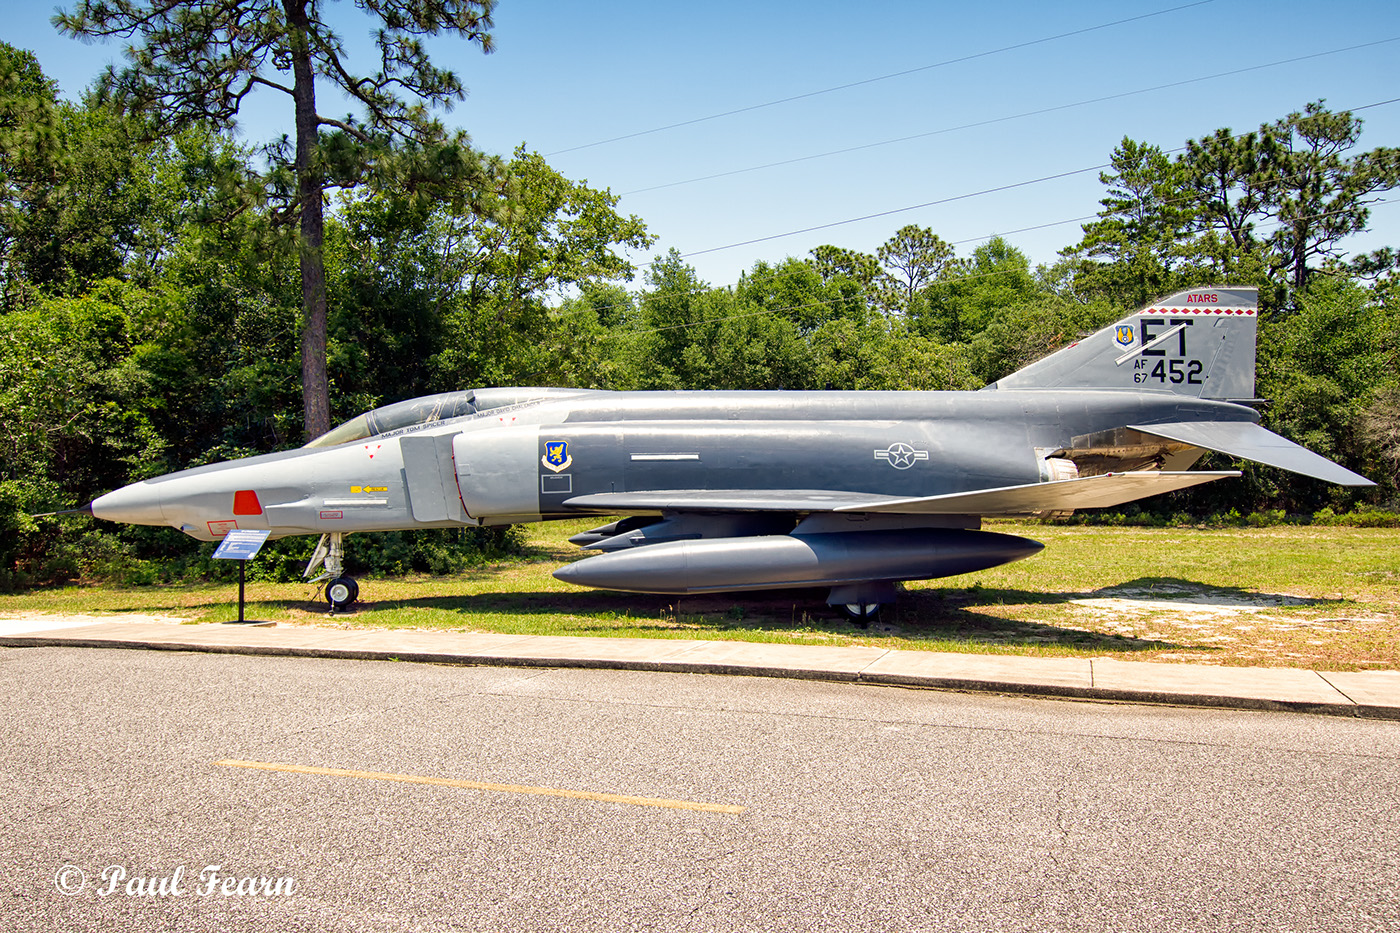 air force armament museum eglin air force base on behance mcdonnell rf 4c 32 mc phantom ii 67 0452 last assigned to the 3246th test wing armament development test center eglin afb in the markings it carried